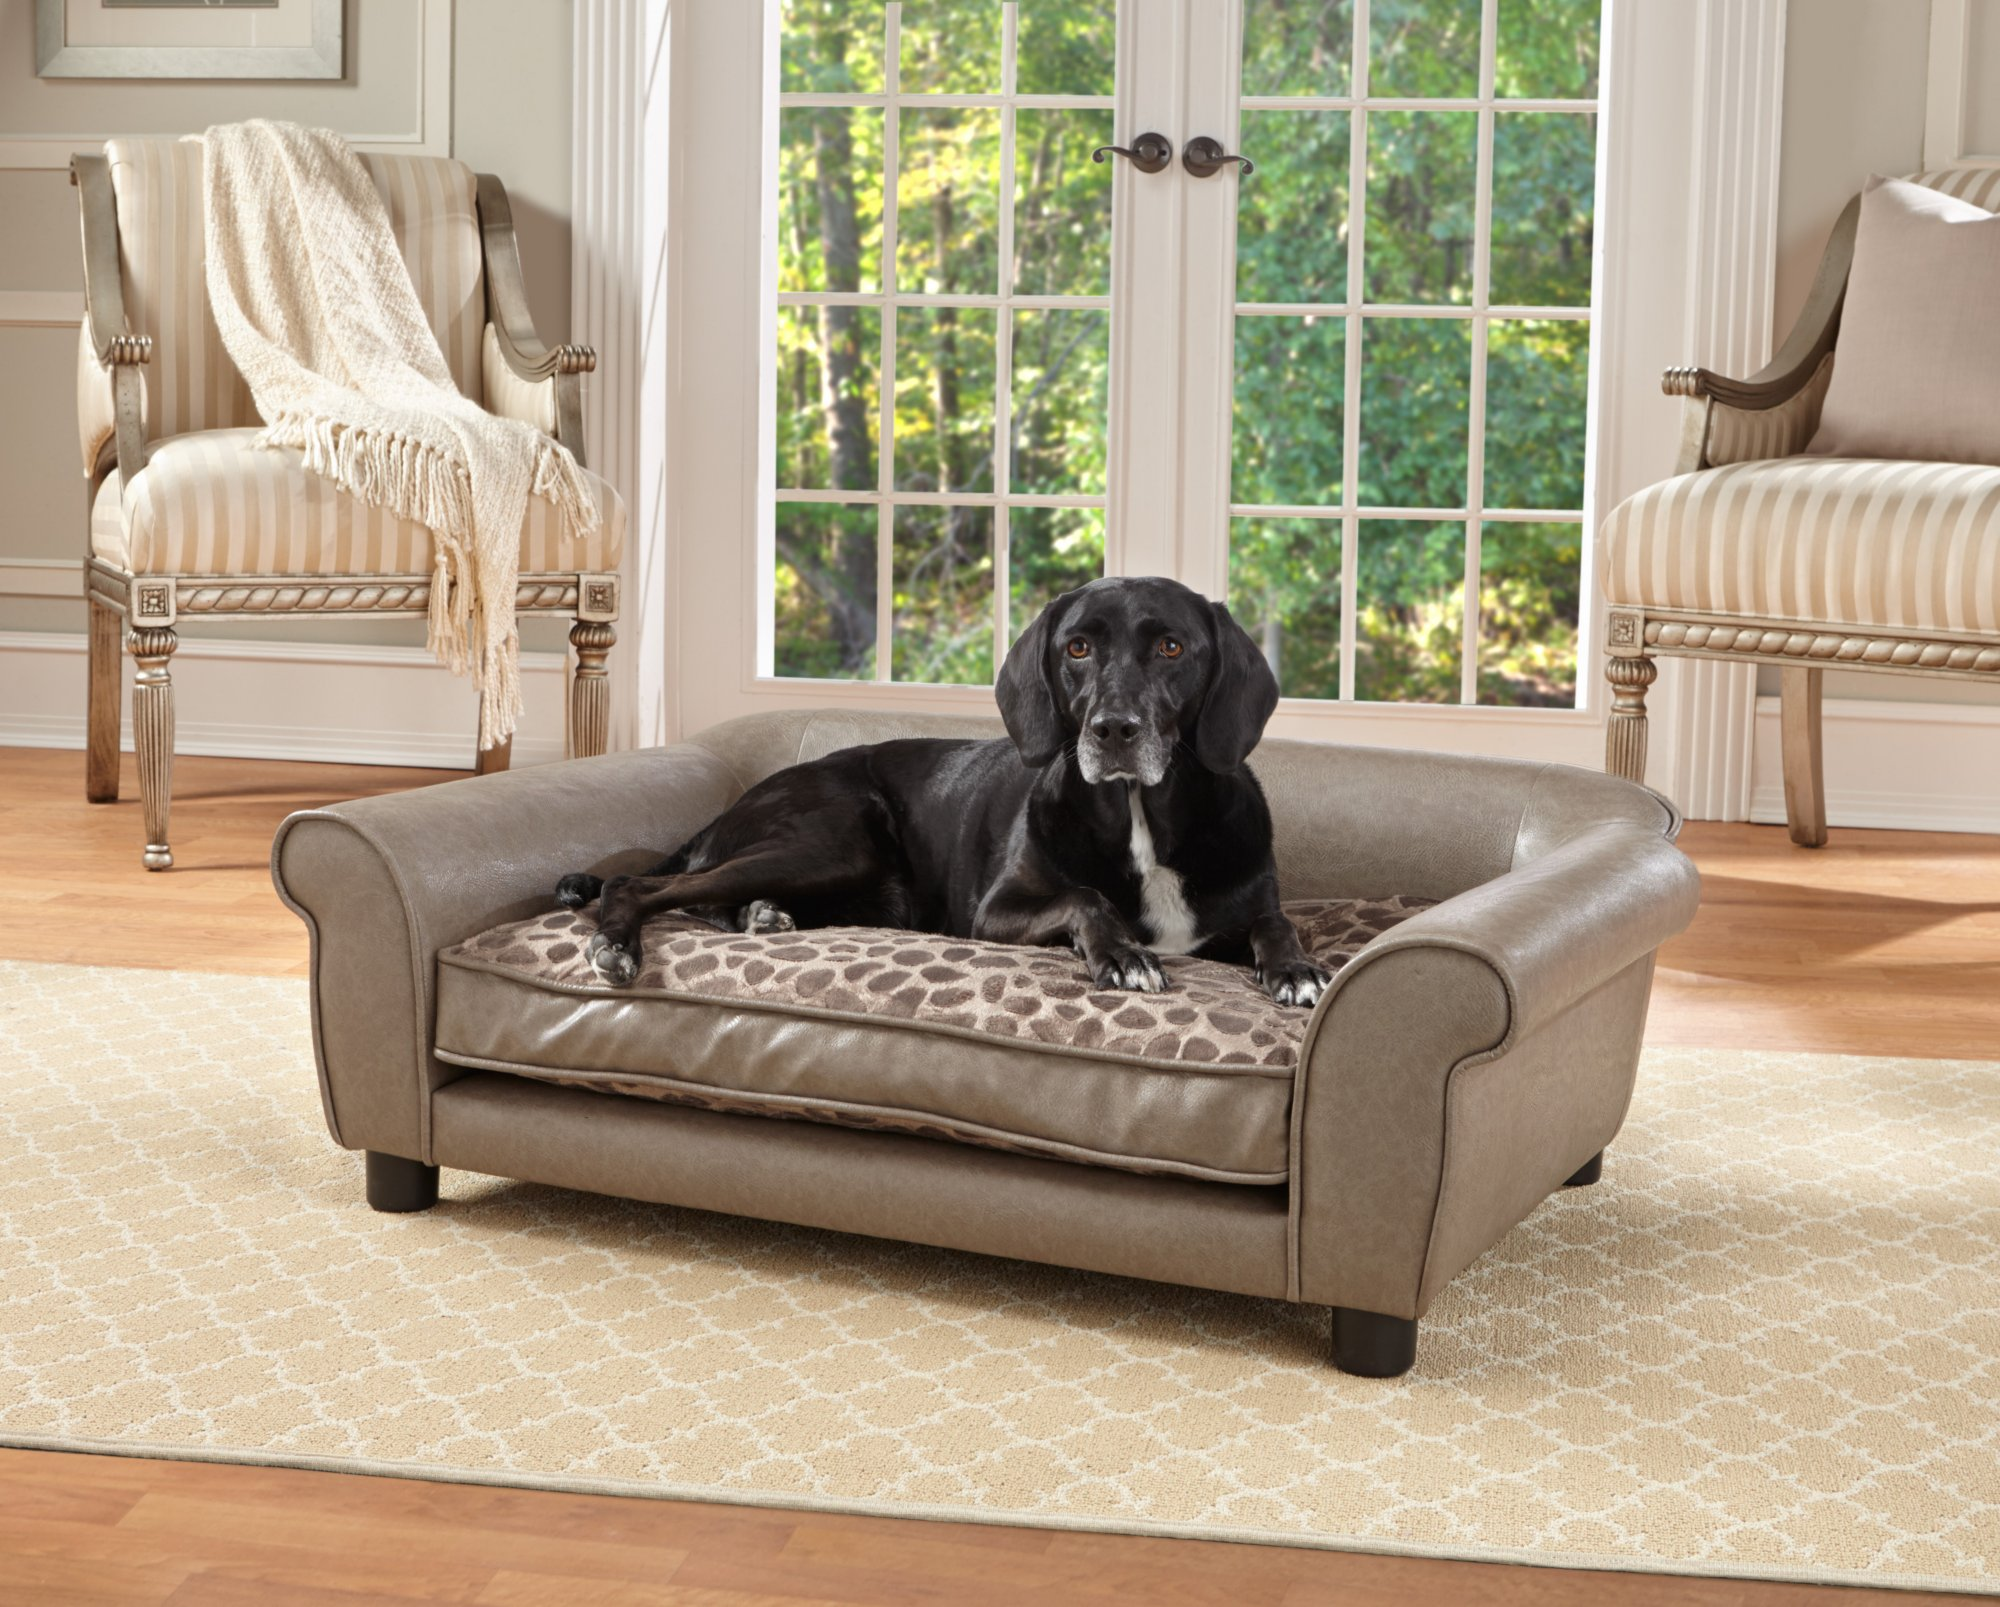 can dog fleas live in sofas sectional sofa under 500 dollars enchanted home pet pewter rockwell petco